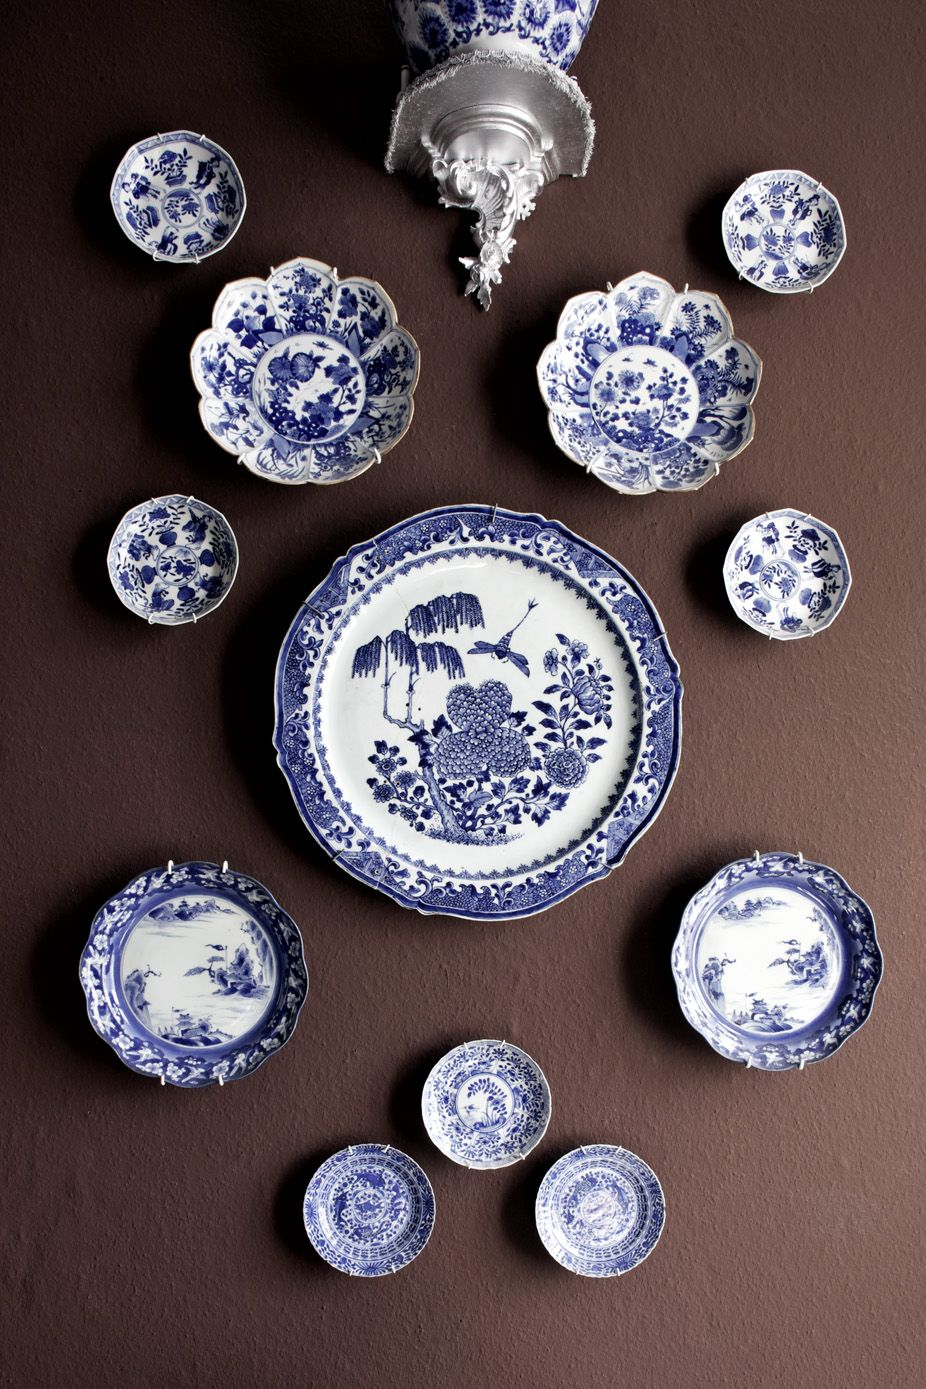 Blue And White Decorative Wall Plates Unique Antikt Porslin Och Rokoko  Hanging Plates Blue Plates And Plate Wall Design Inspiration